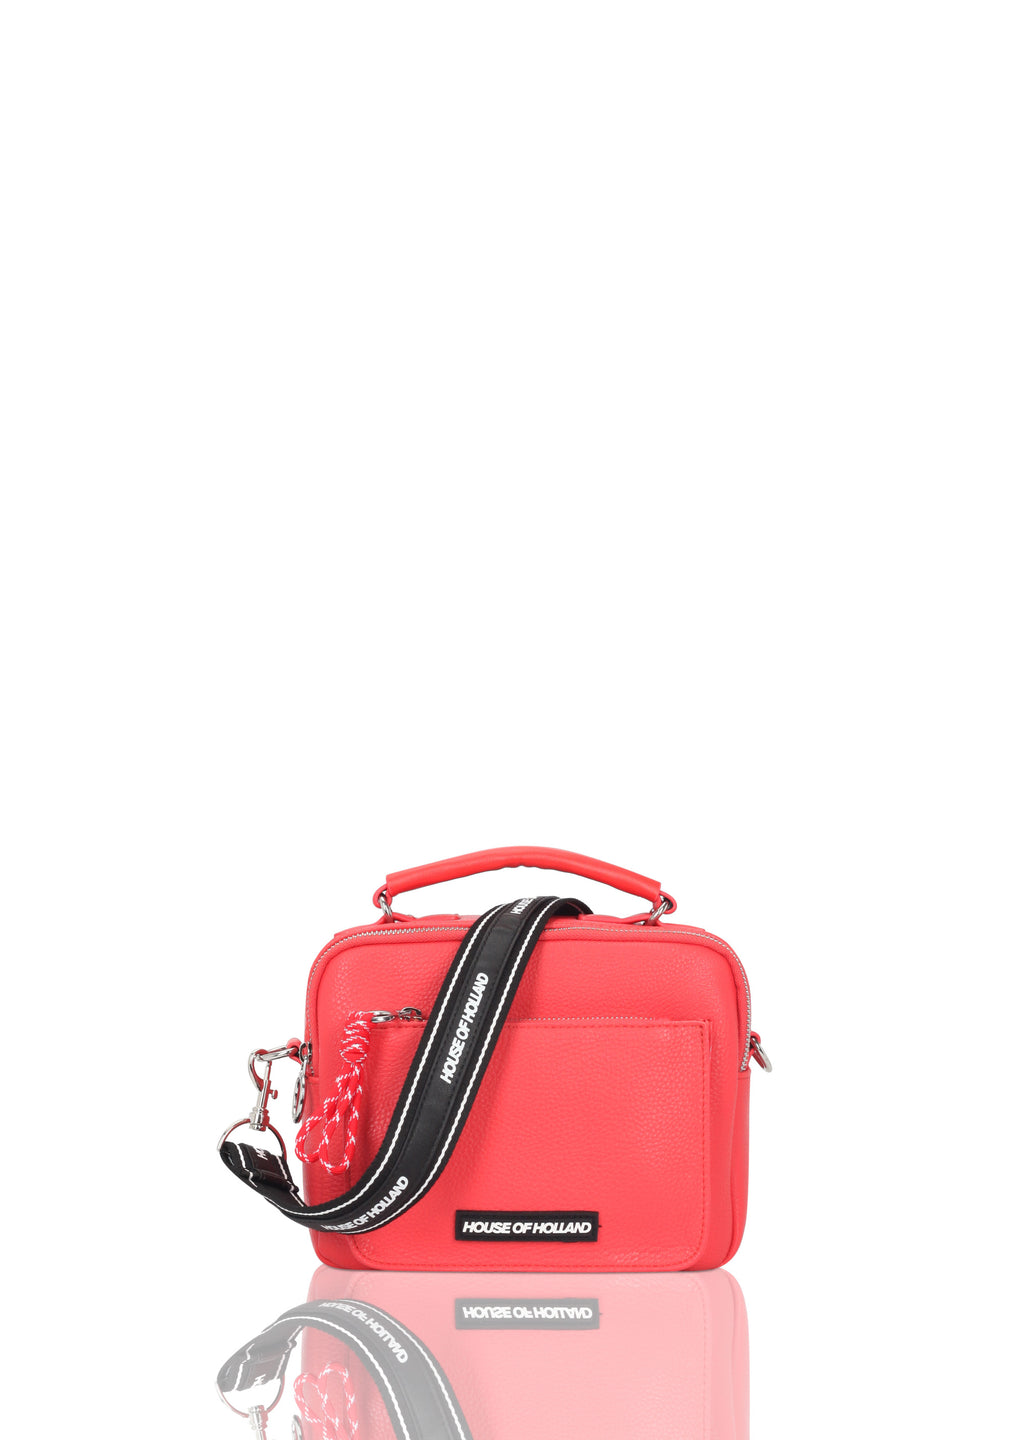 Double Pocket Cross Body Bag